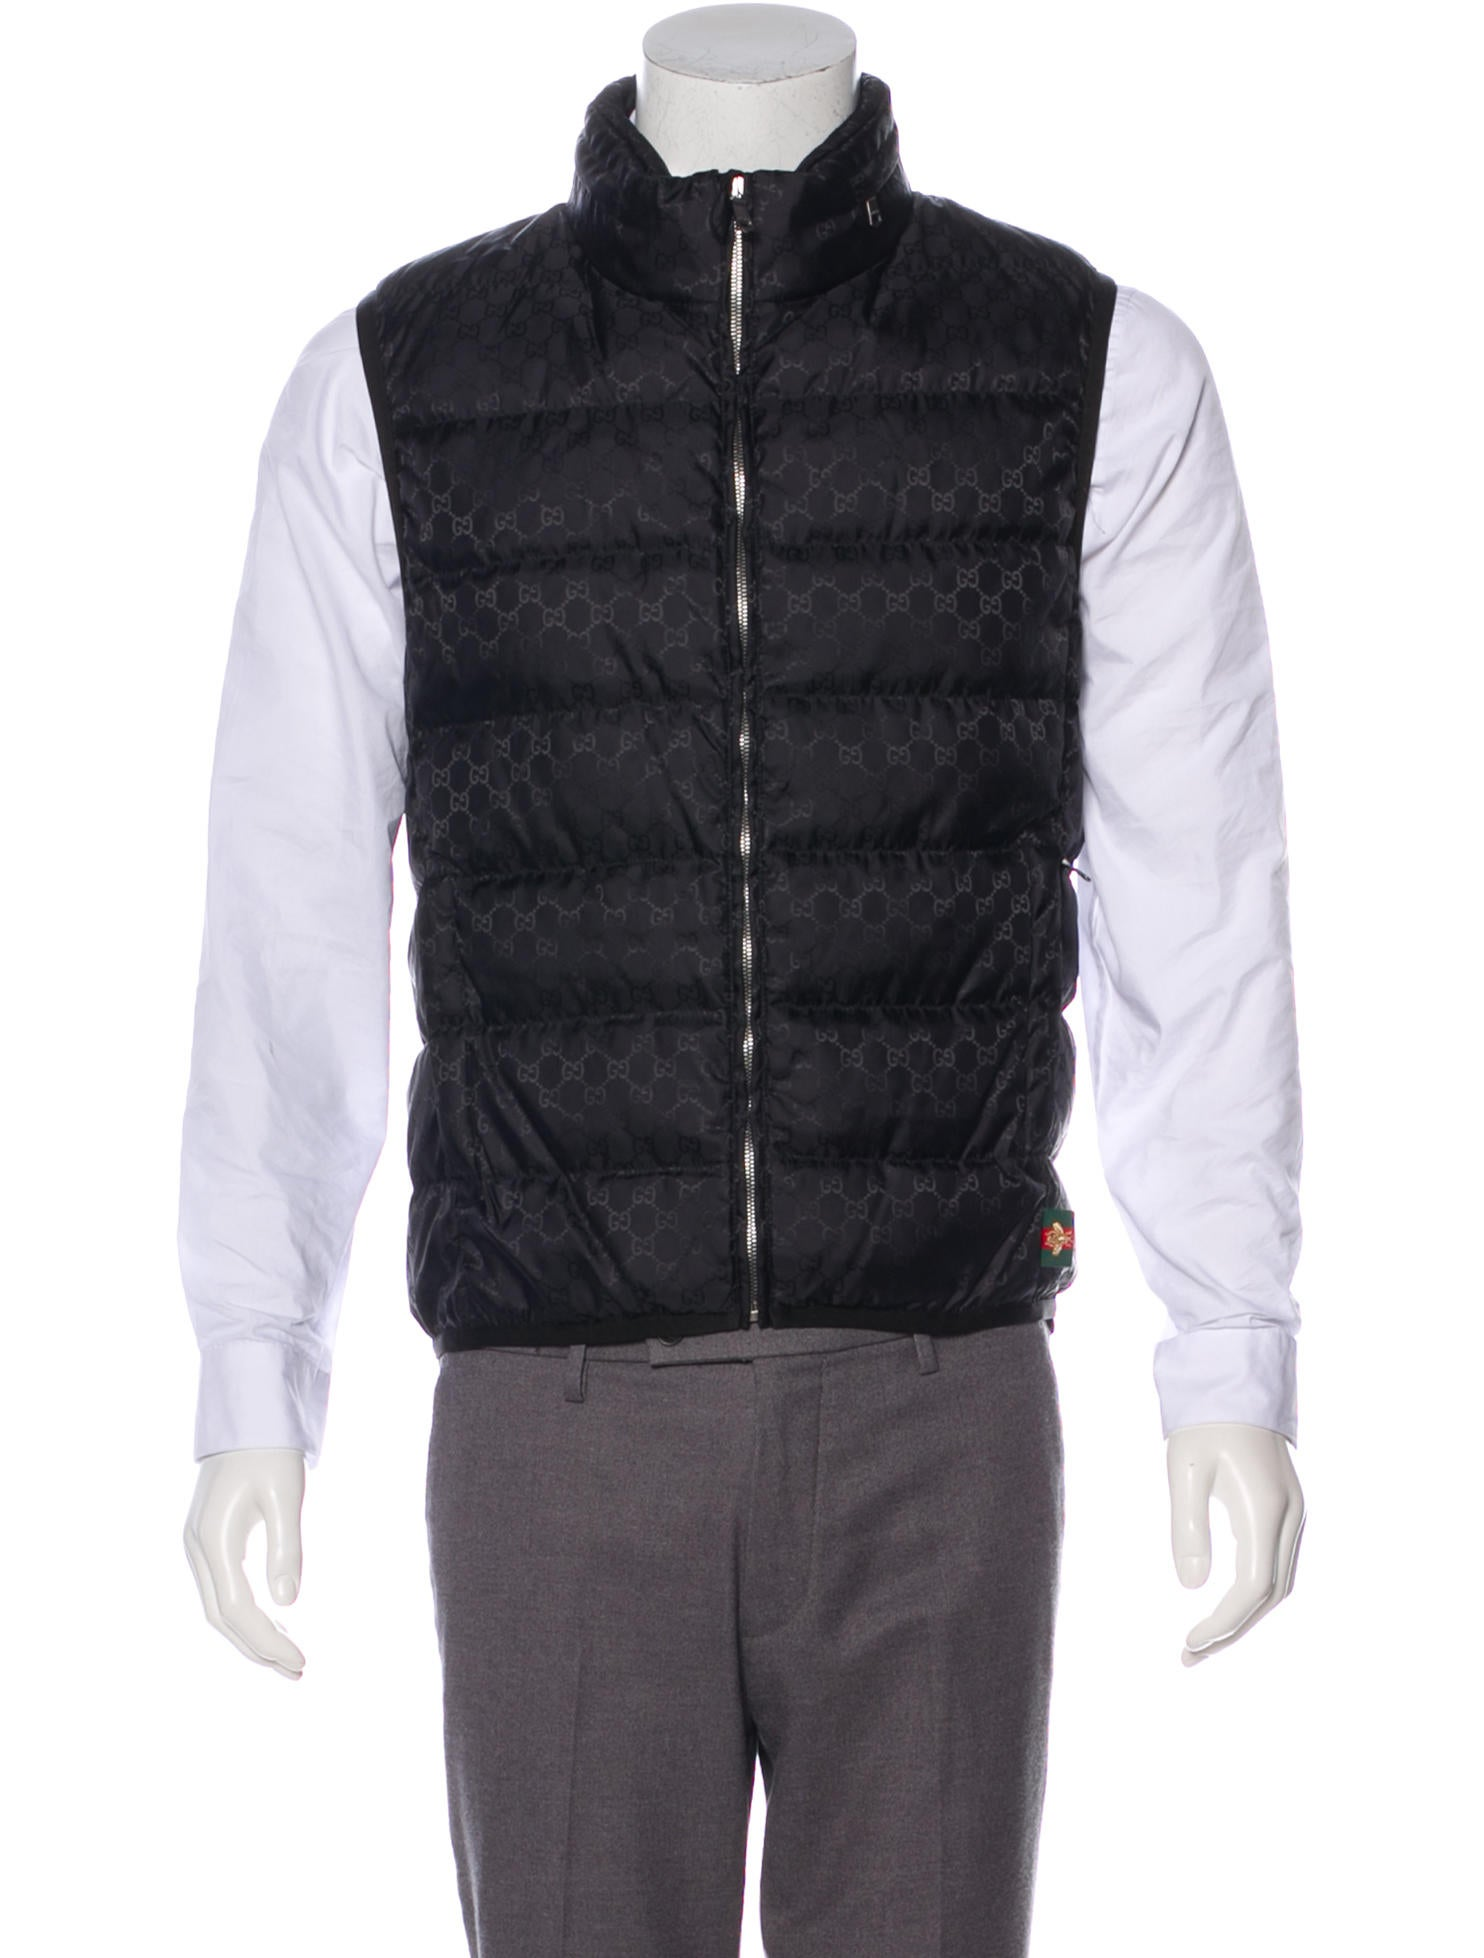 dff83eb65 Gucci Quilted GG Down Vest - Clothing - GUC253673 | The RealReal